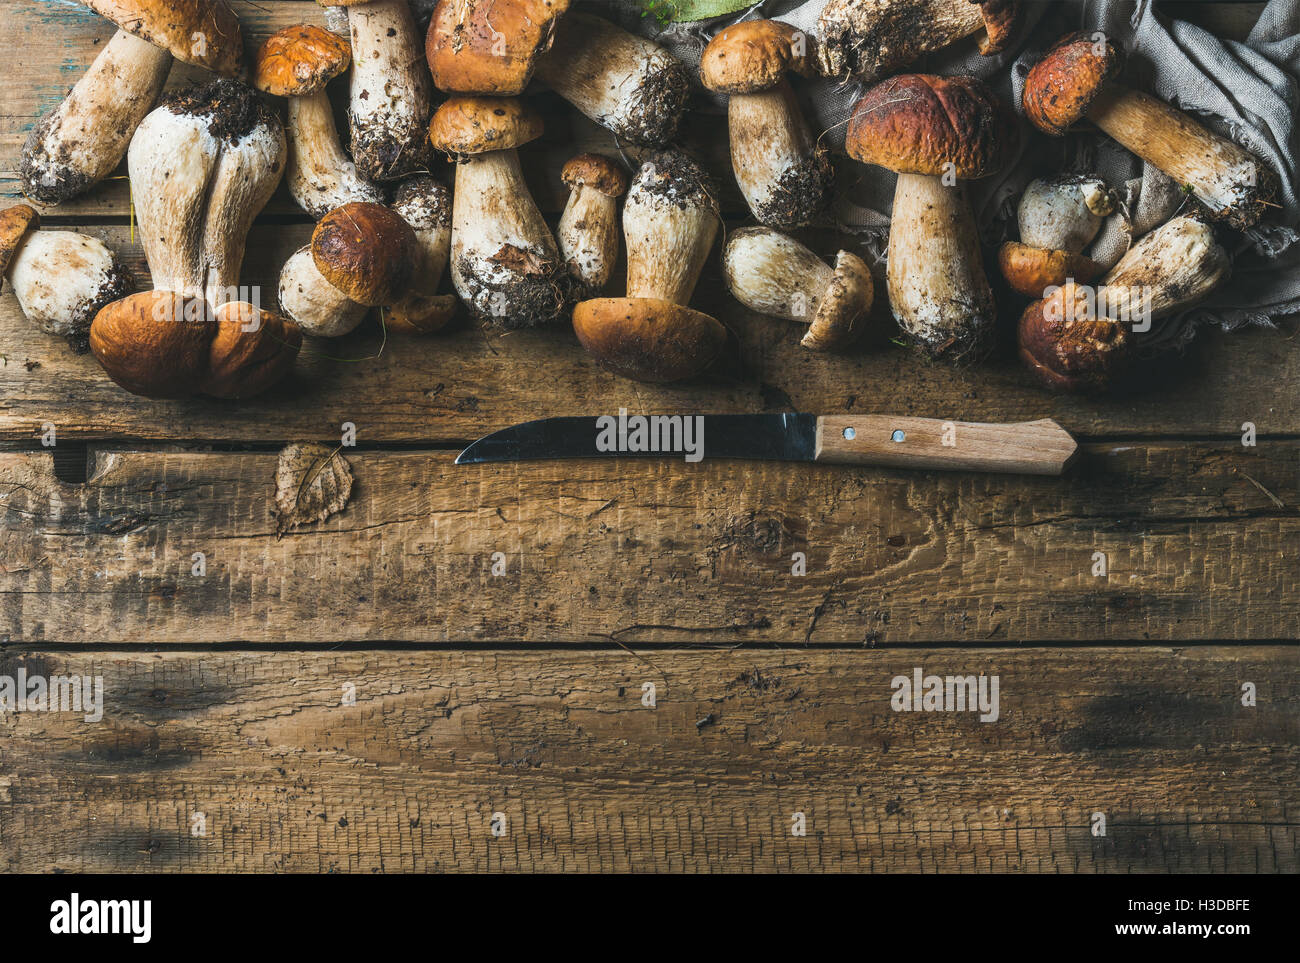 White forest mushrooms and knife on rustic wooden background - Stock Image